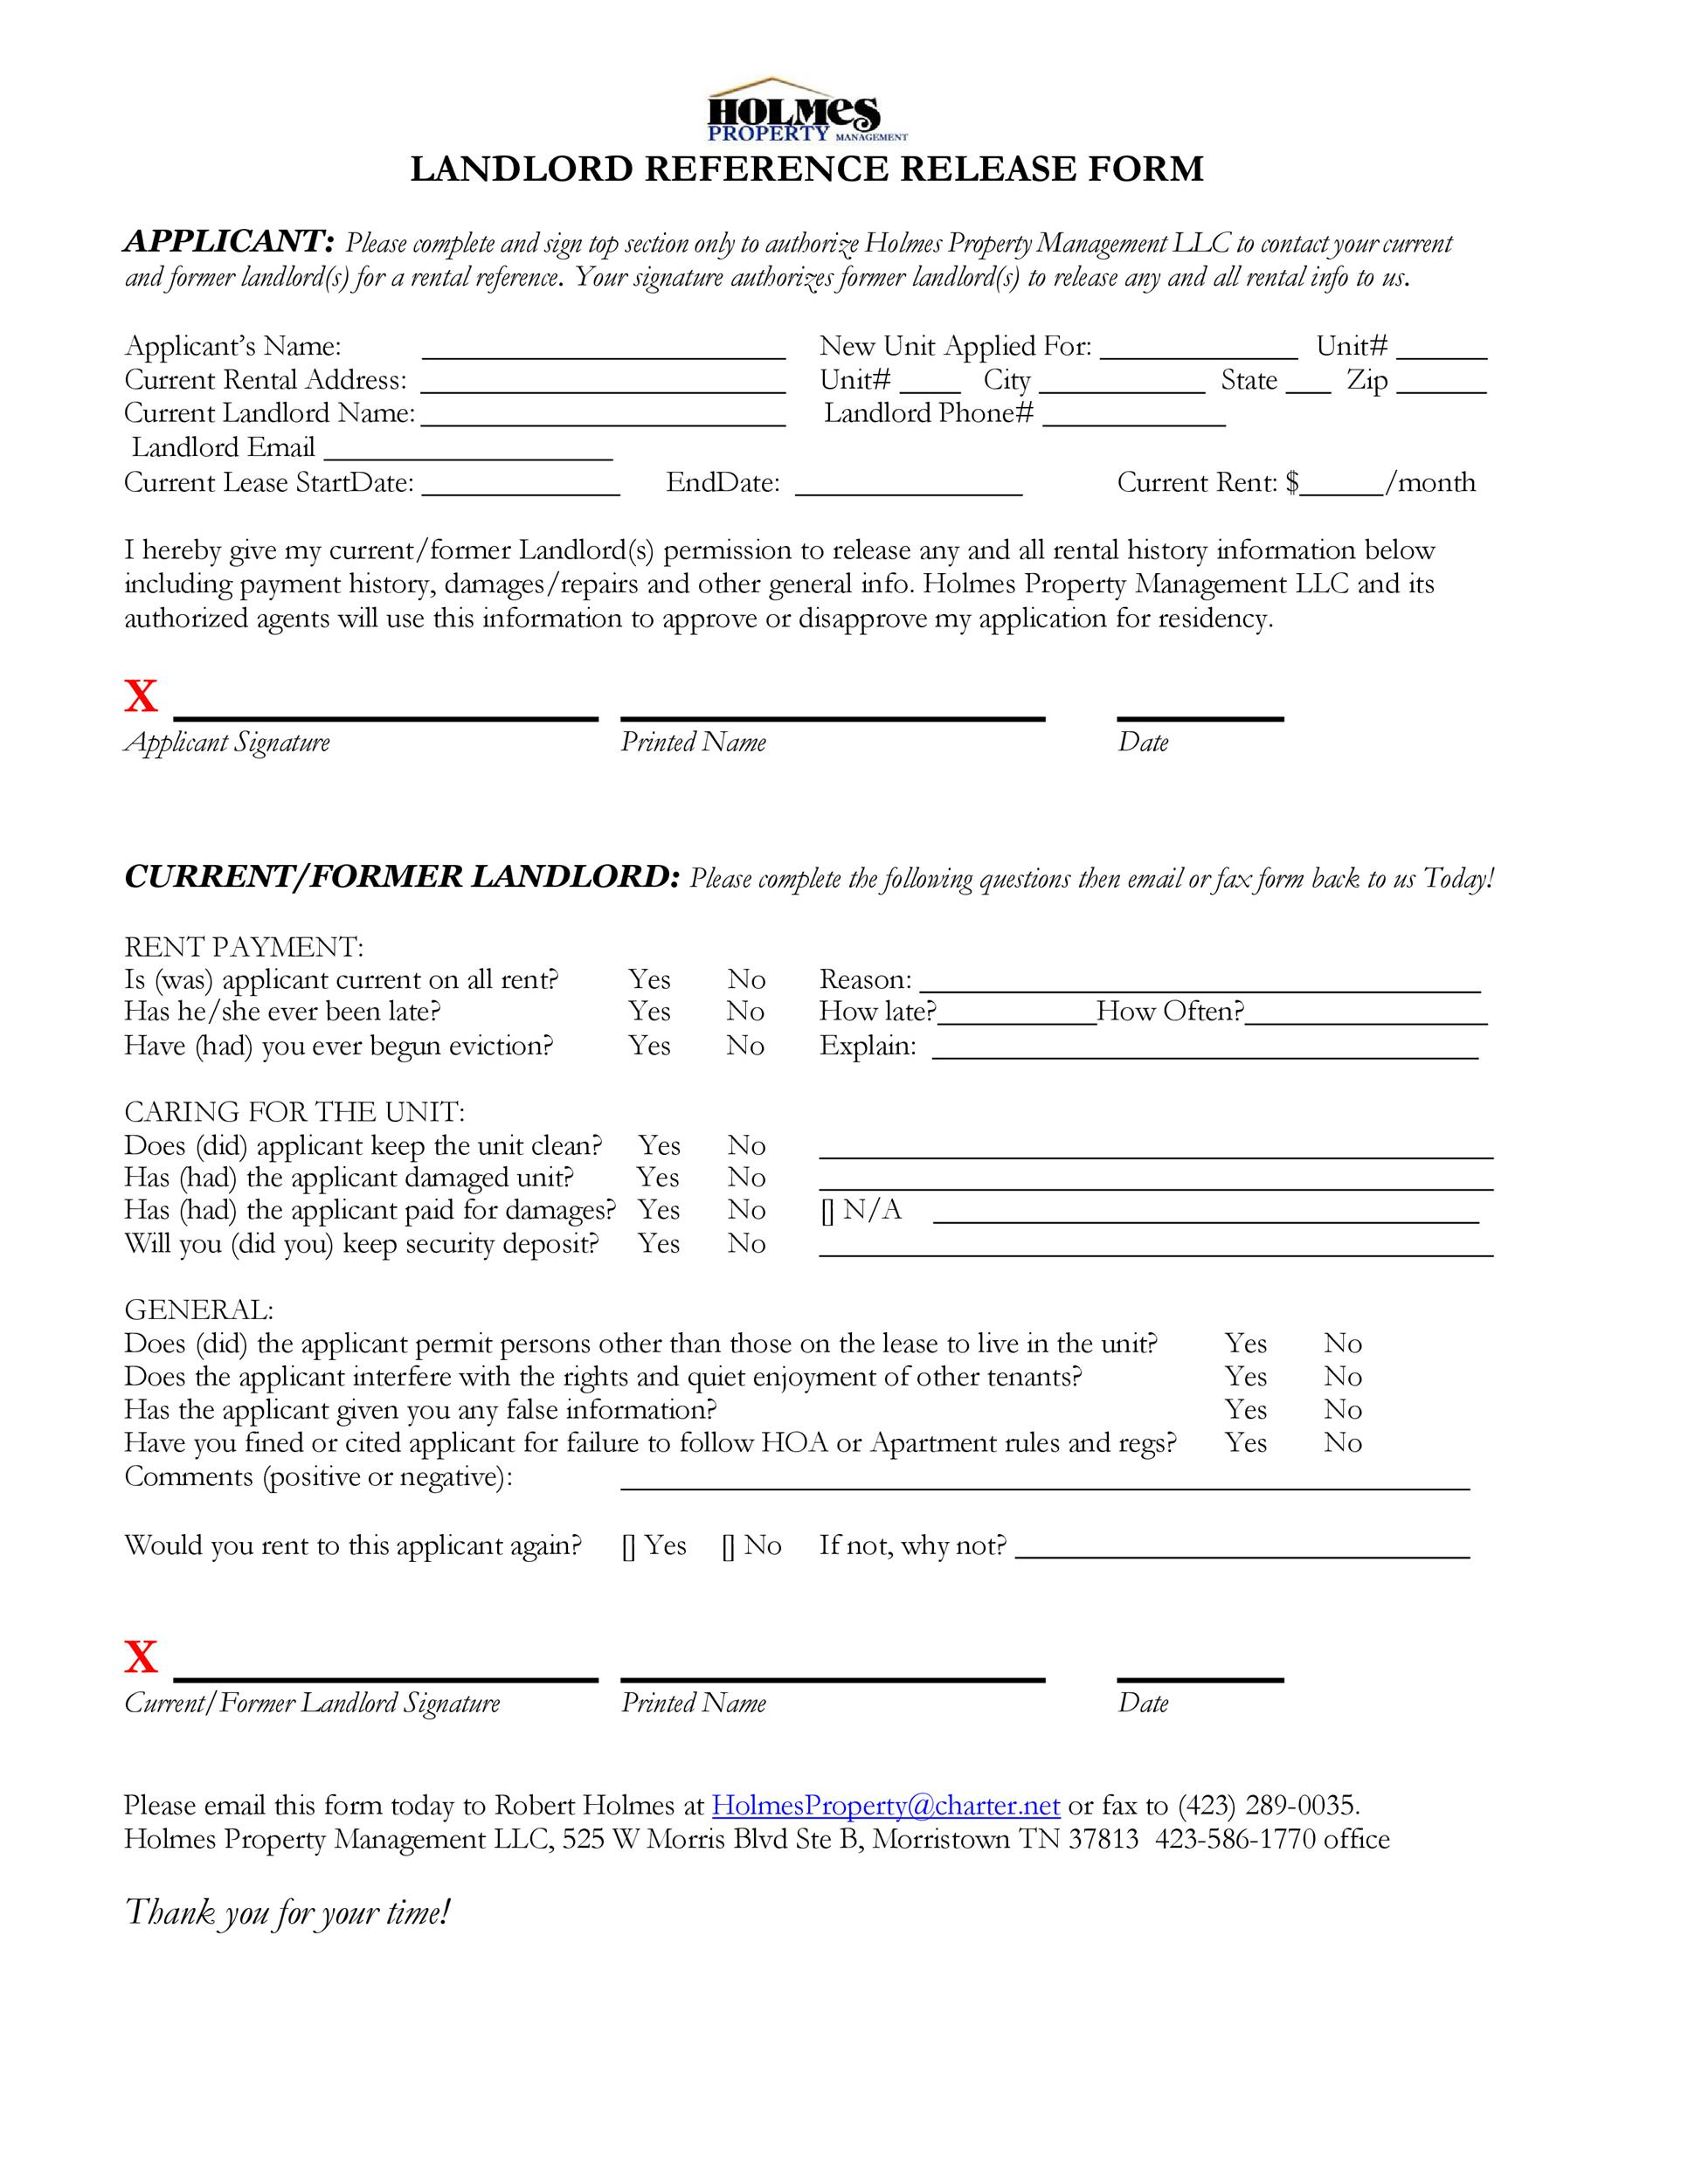 Free landlord reference letter 21